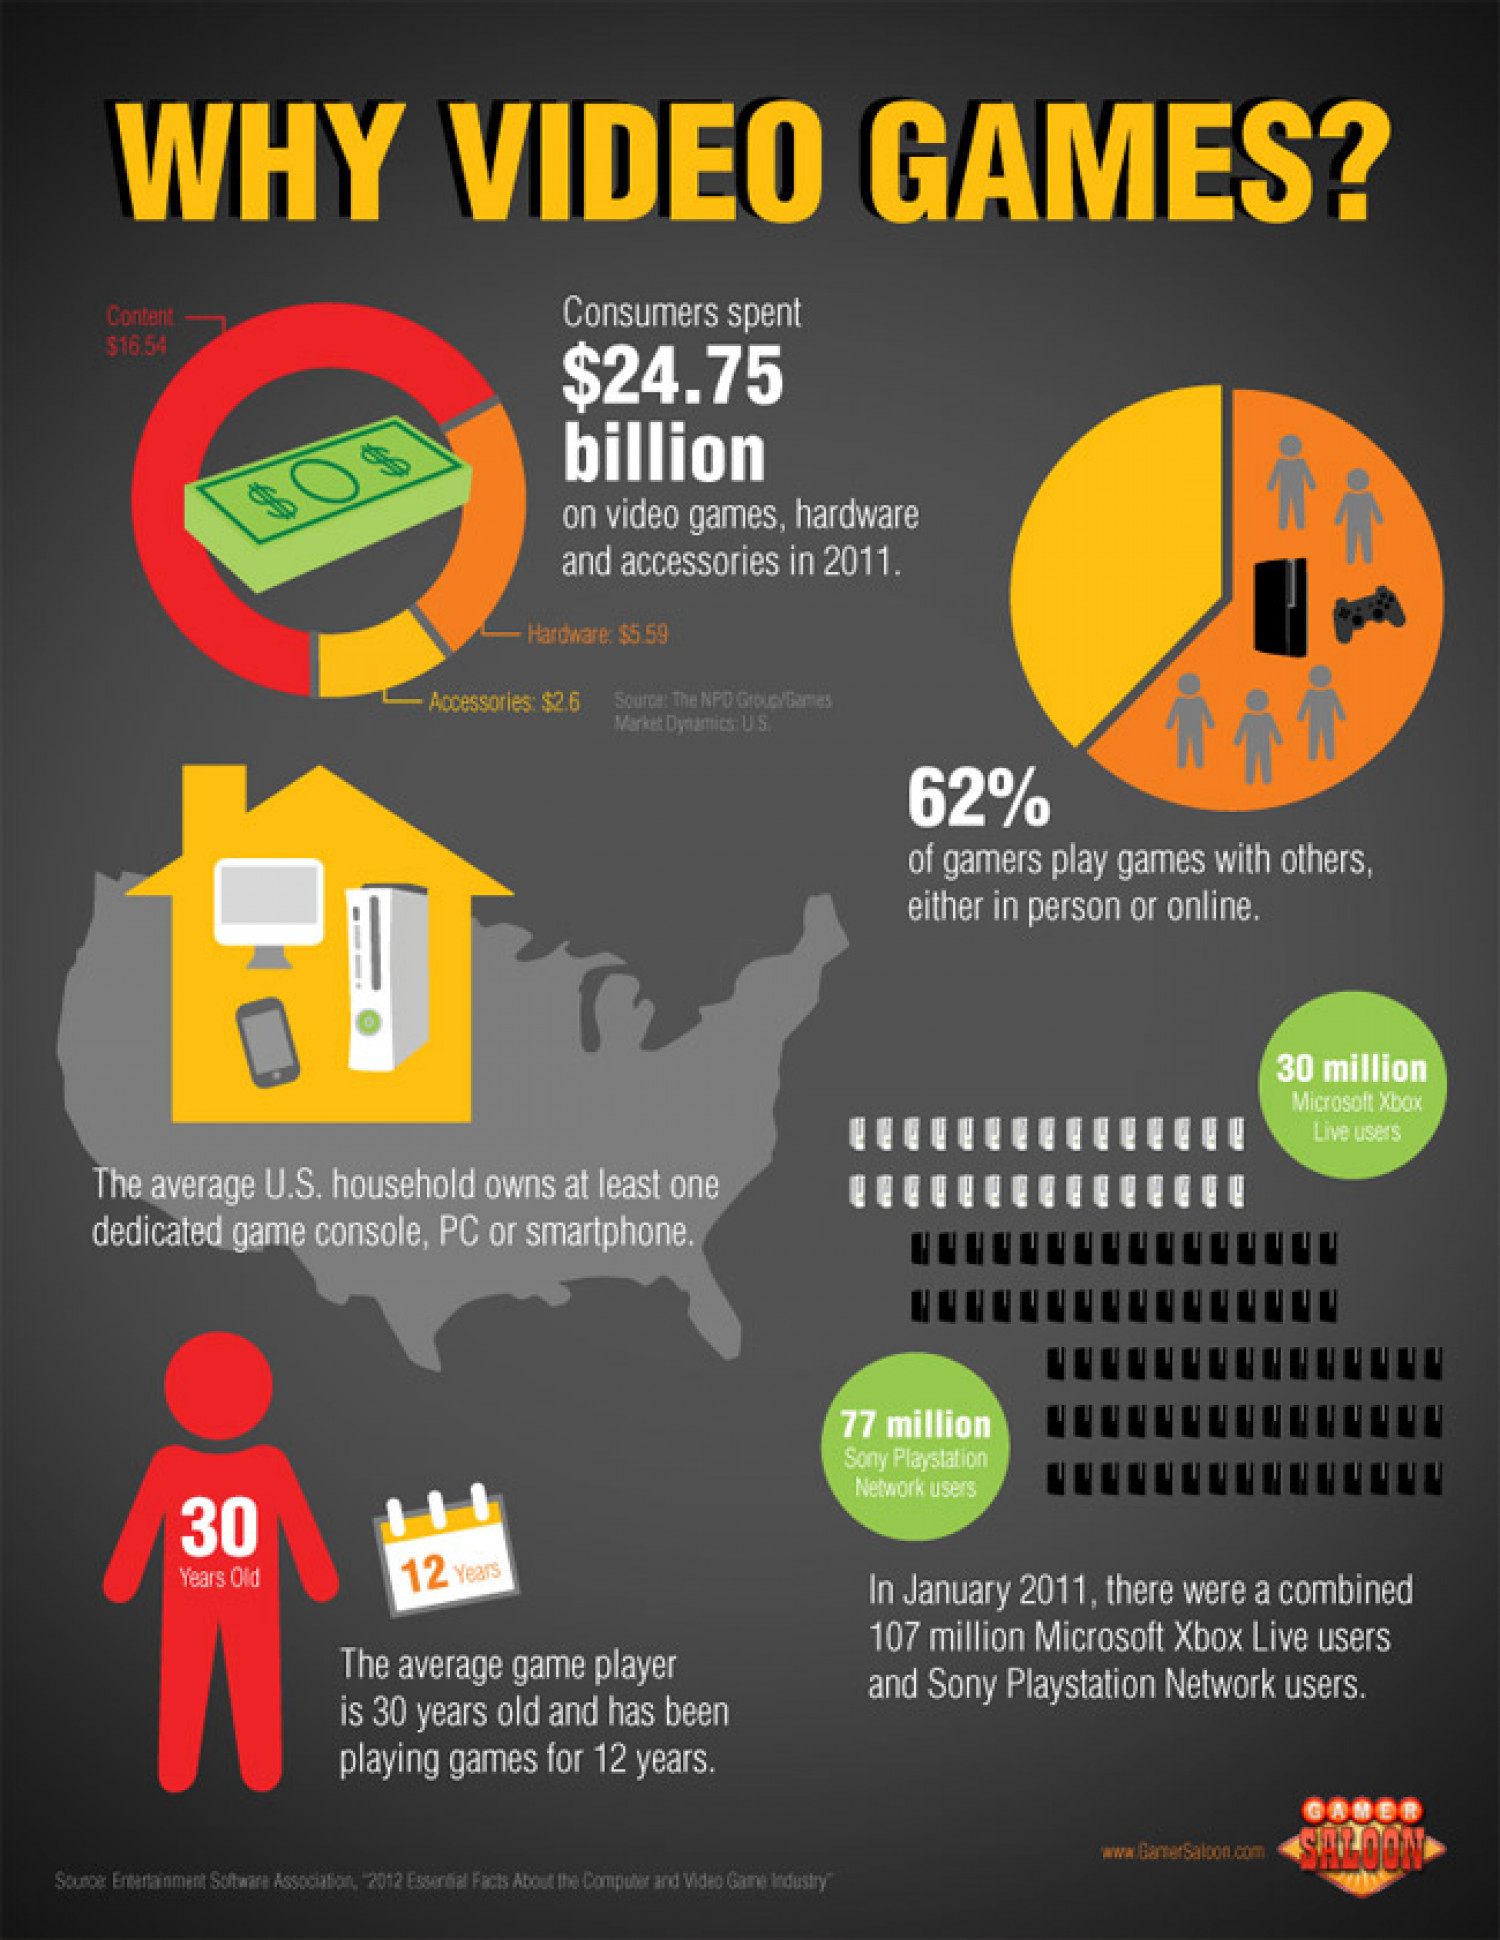 Why Video Games? Infographic